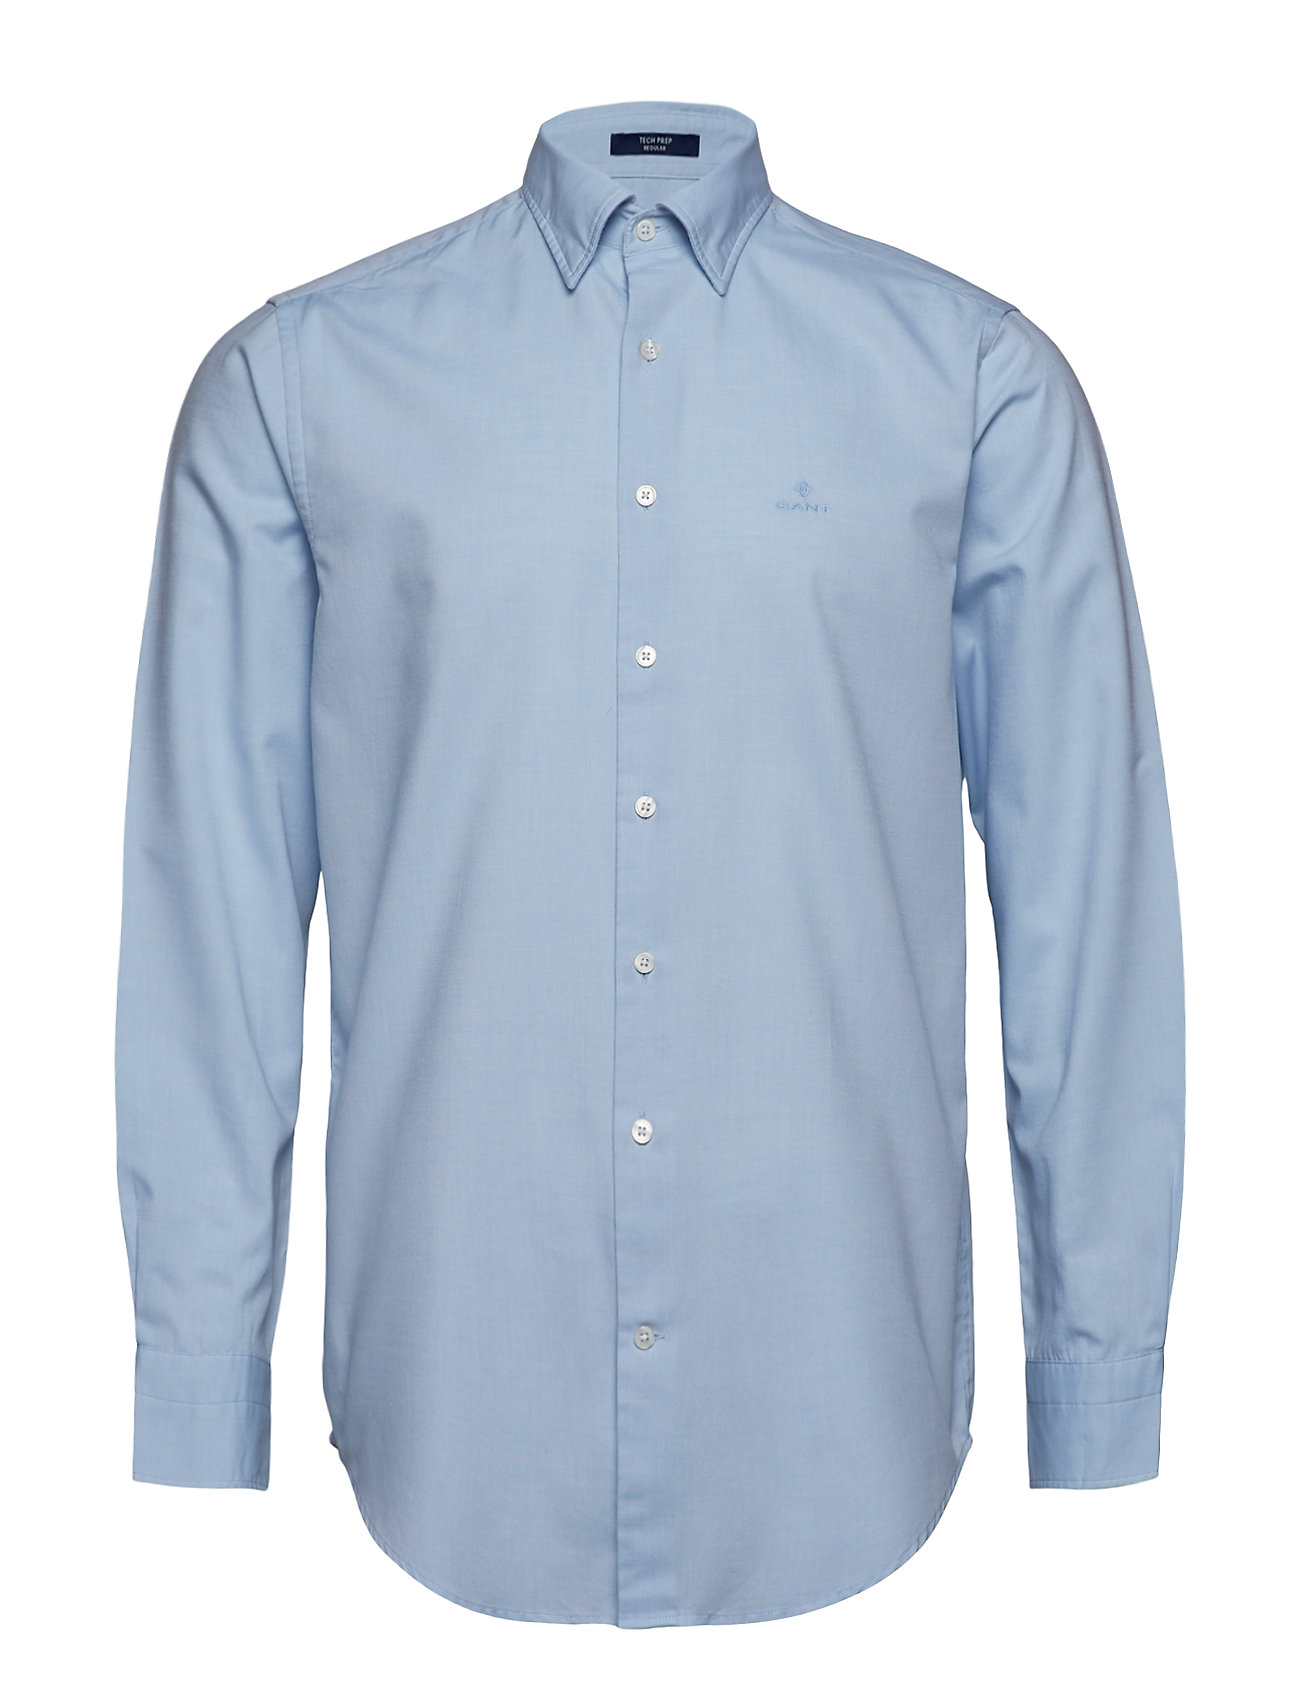 GANT Tp Oxford Plain Reg Hbd Hemd Business Blau GANT